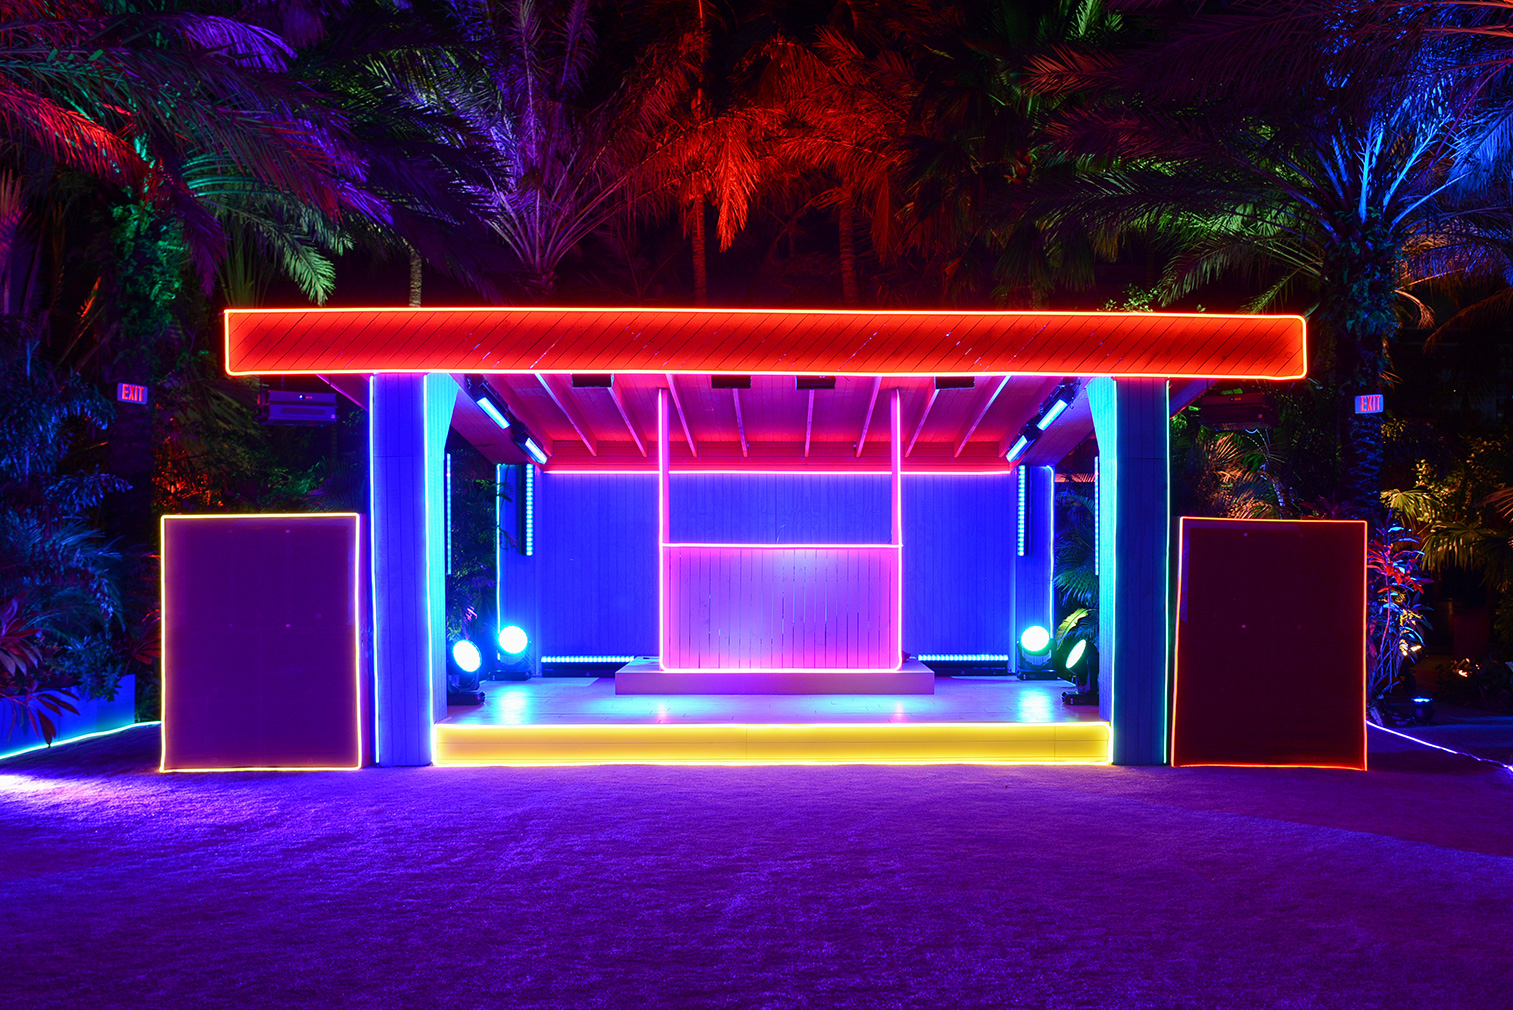 A 3-night-only Club in Miami by Prada and Carsten Holler